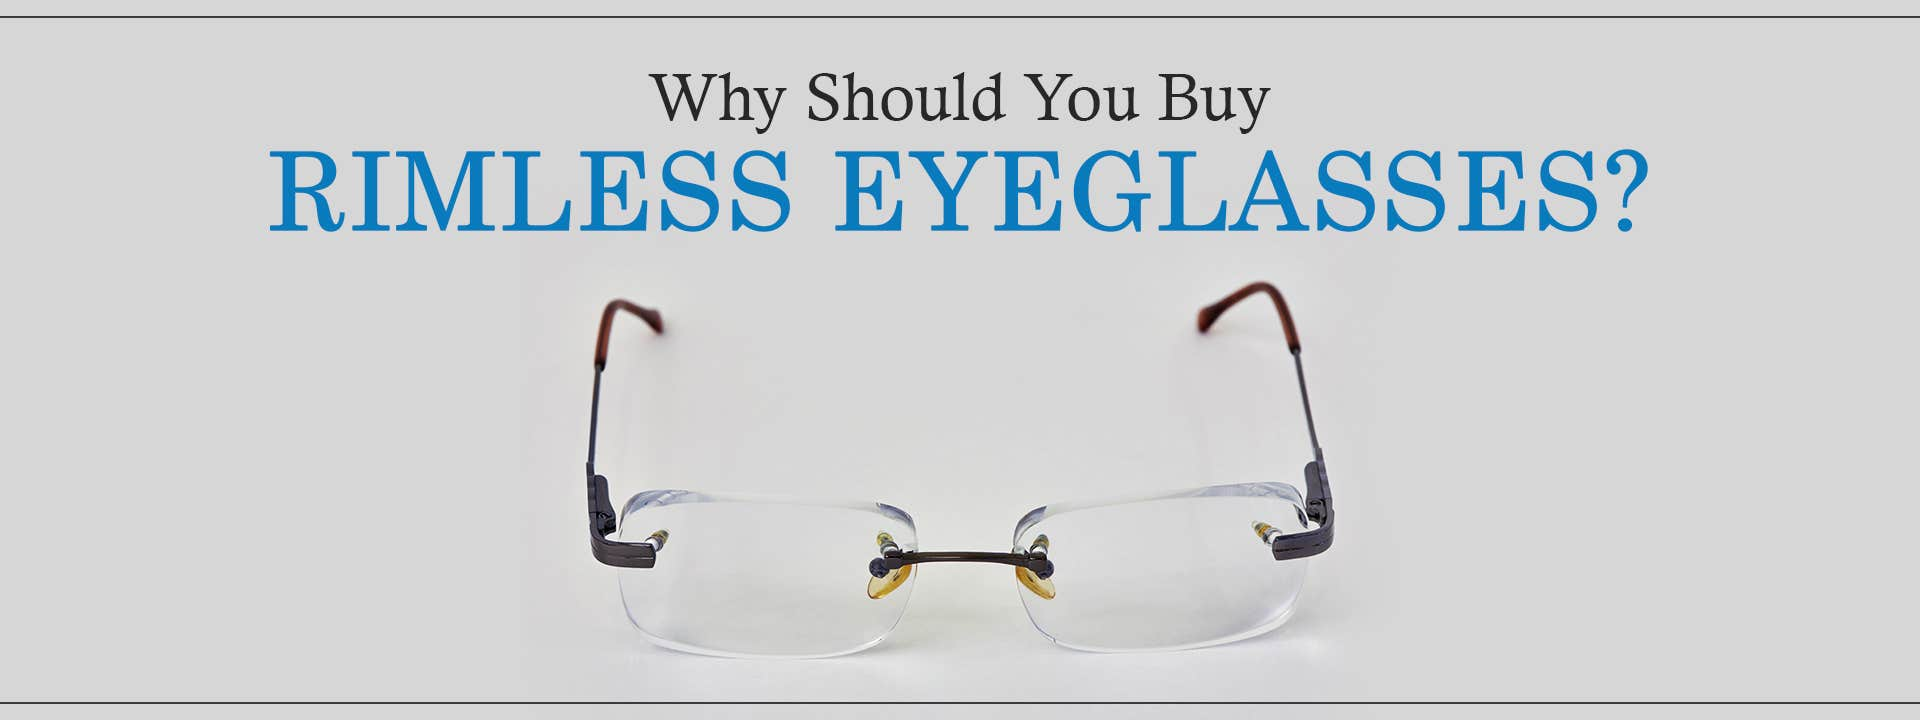 Why Should You Buy Rimless Eyeglasses?